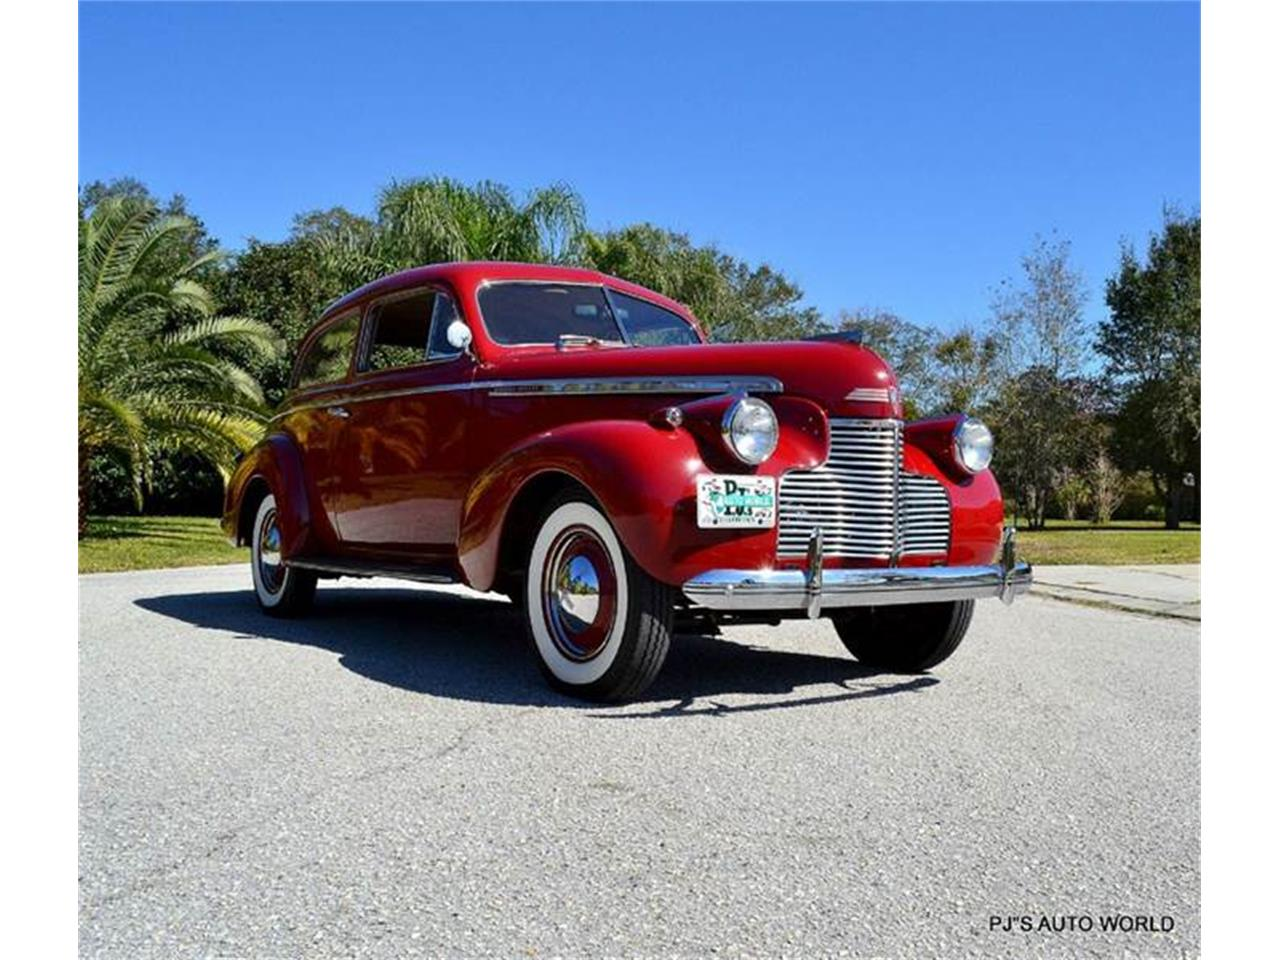 Large Picture of 1940 Super Deluxe located in Clearwater Florida - $27,900.00 - GLMM